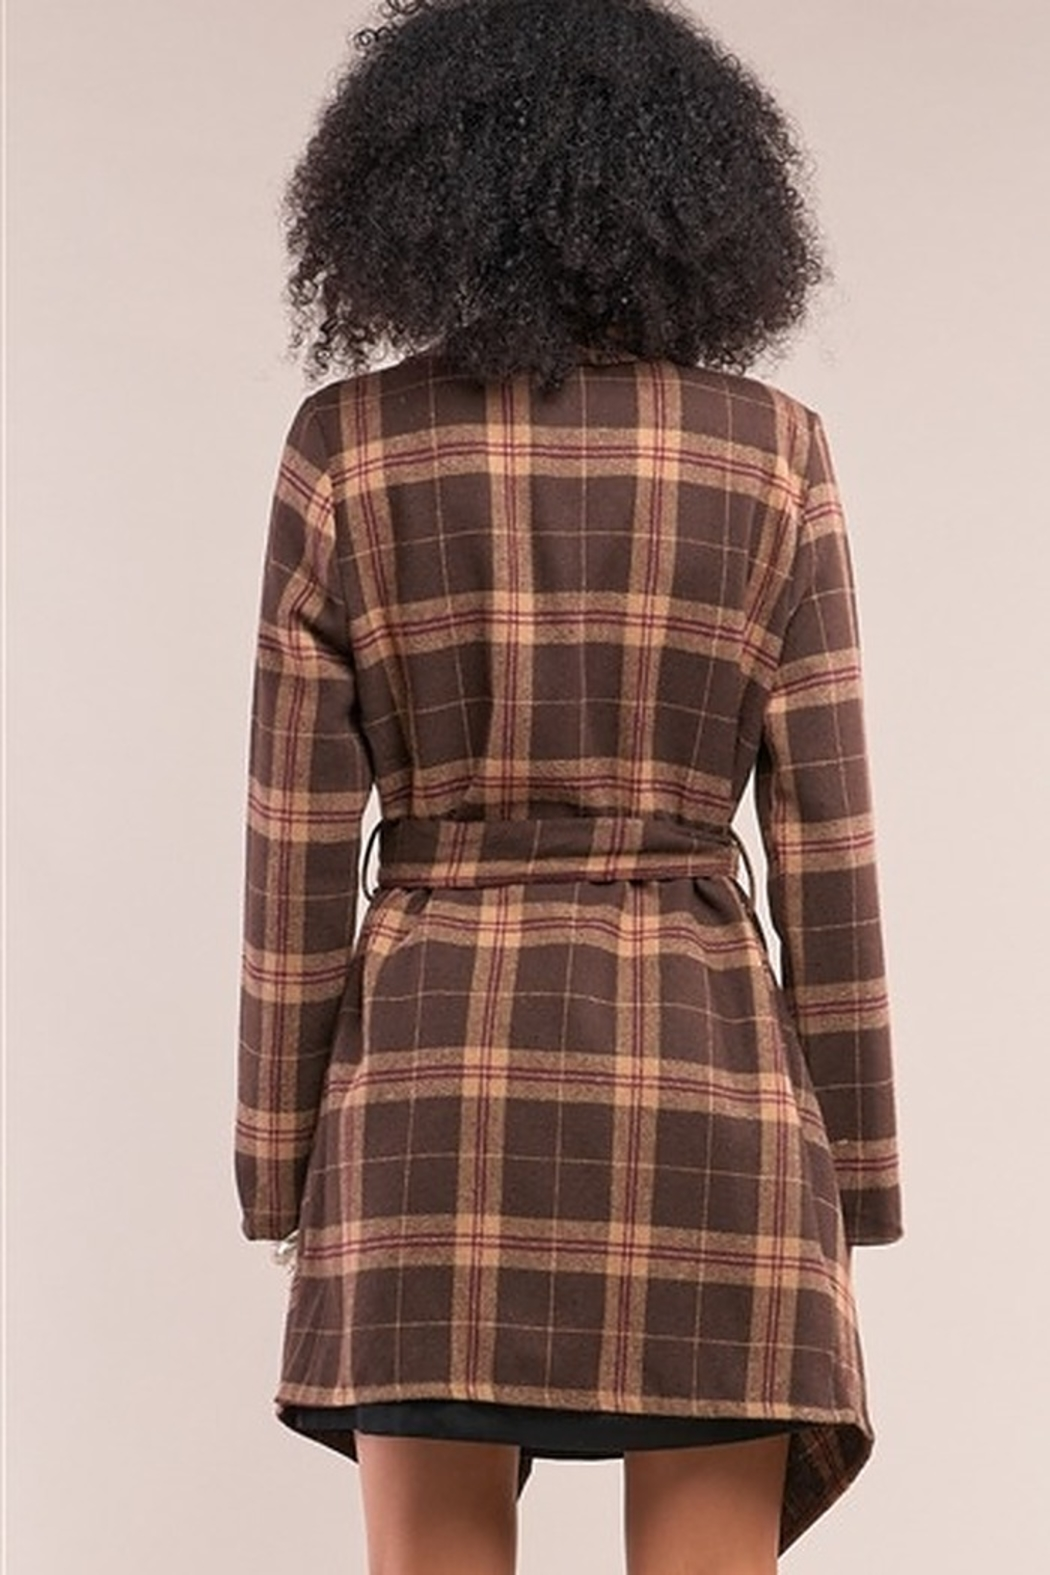 Tasha Apparel Sequoia Plaid Assymetrical Belted Coat - Back Cropped Image